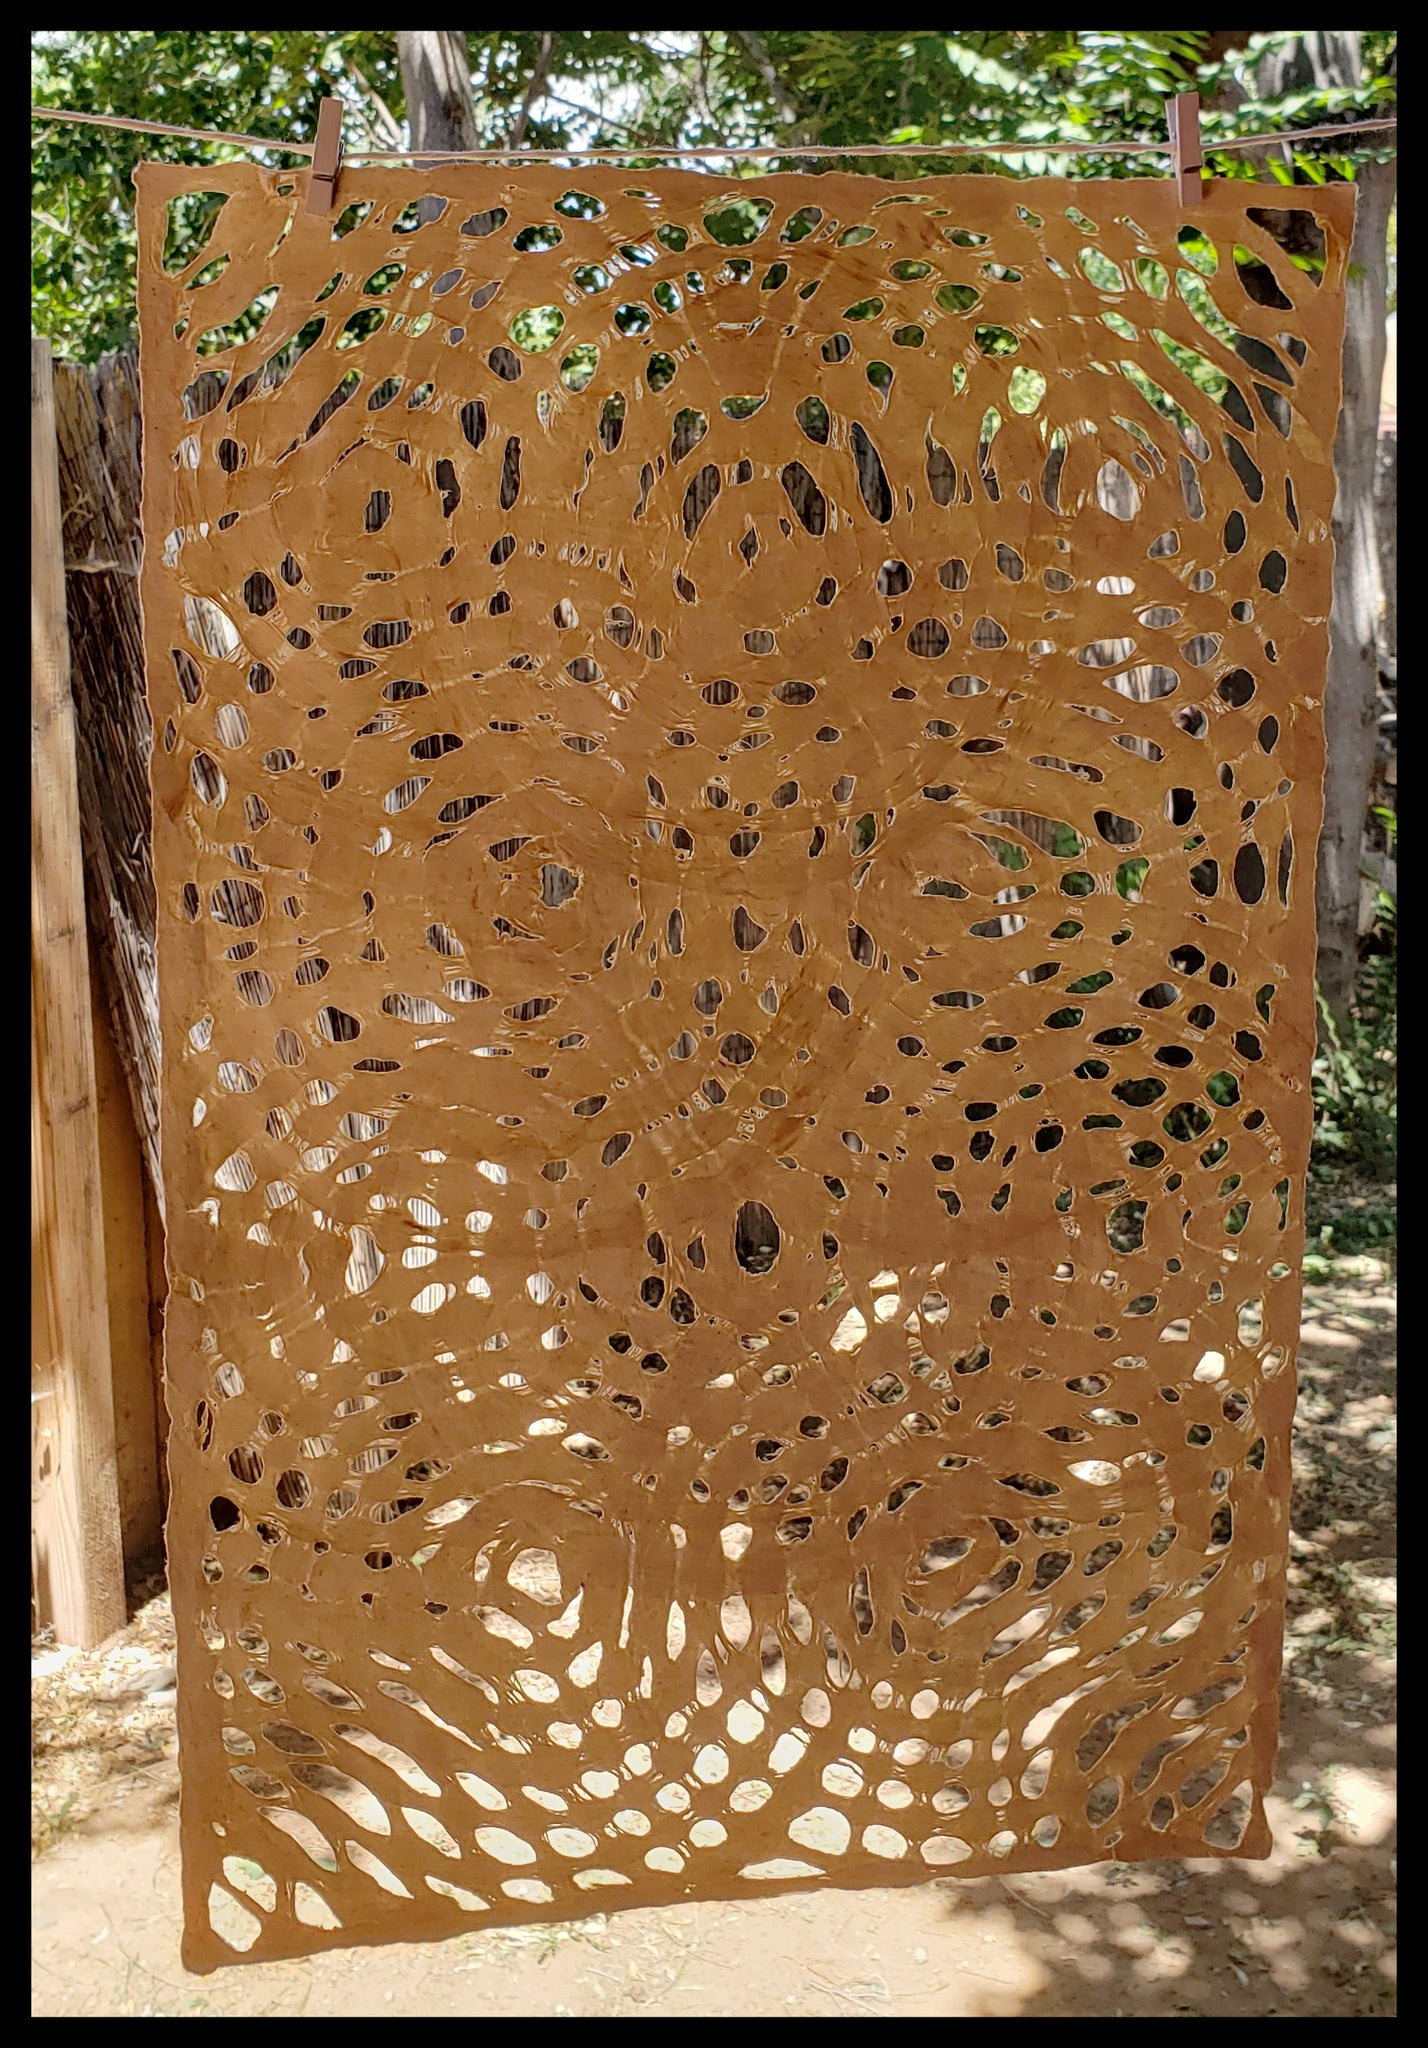 Handmade paper made in Mexico from fig trees cut out circle pattern patterns will vary natural tan ADA The Gilded Page Santa Fe